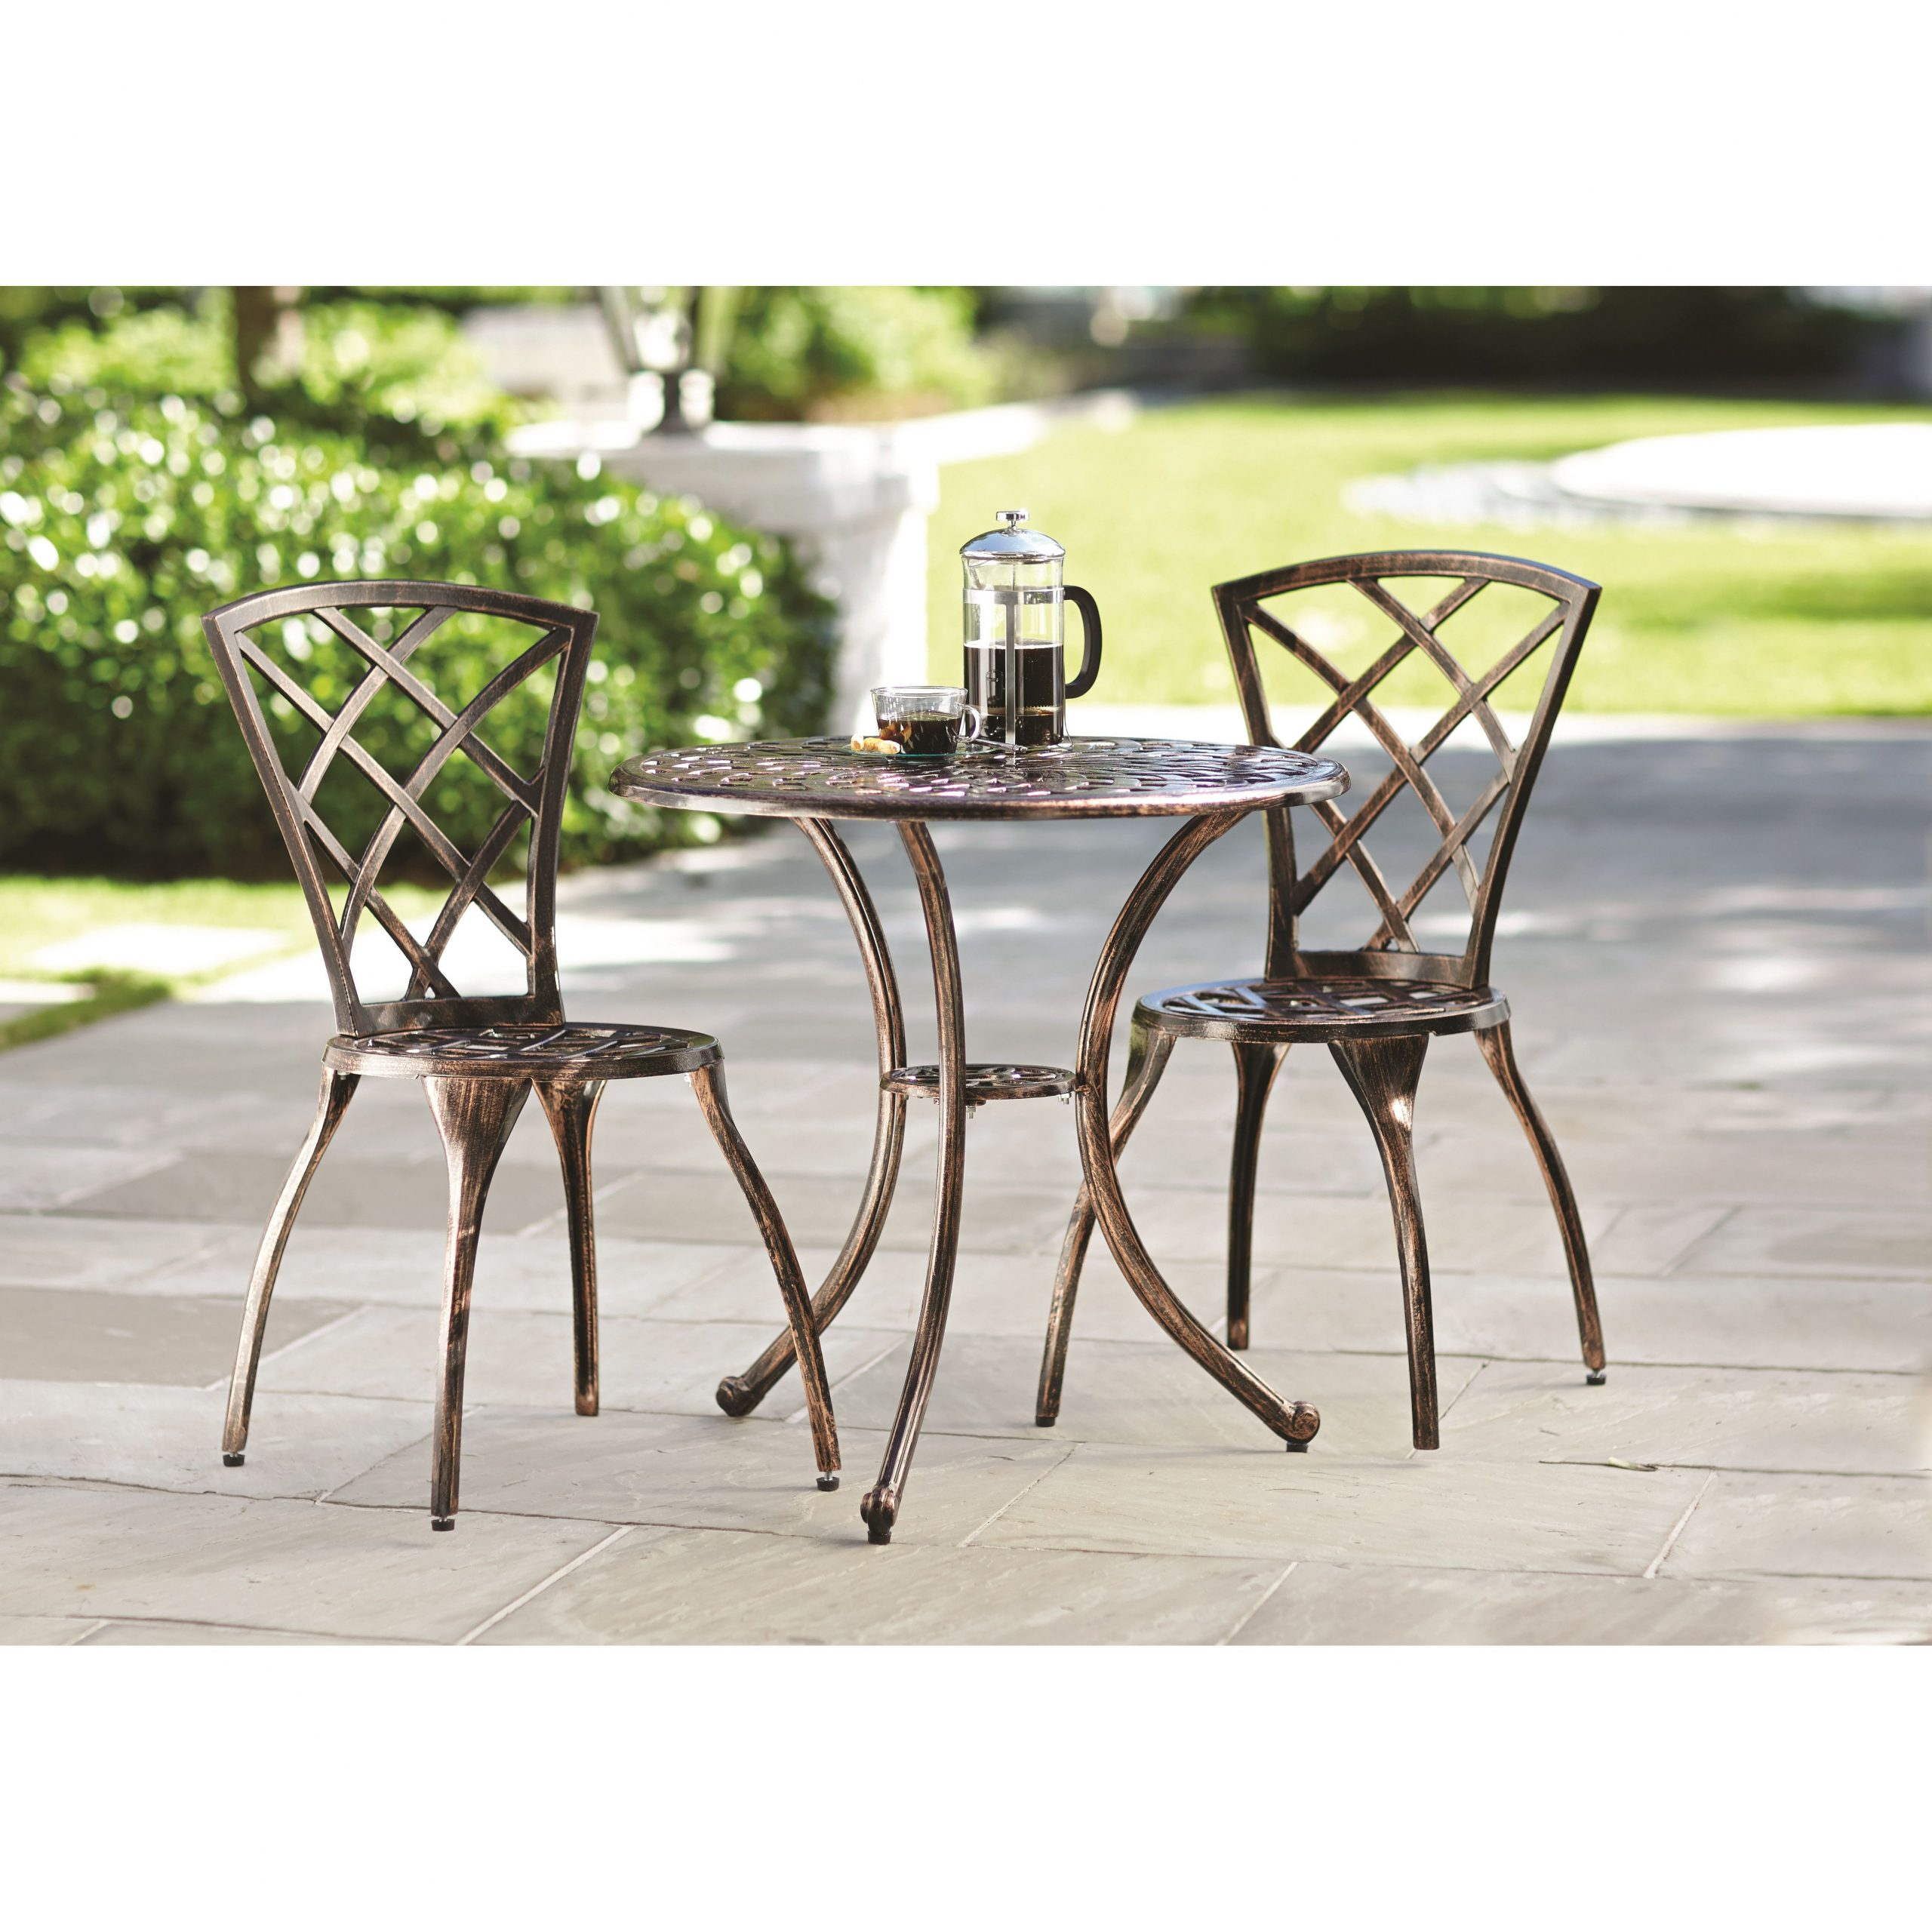 Hearst 3 Piece Bistro Set | New Home | 3 Piece Bistro Set Pertaining To Current Hearst Bar Tables (Image 12 of 25)